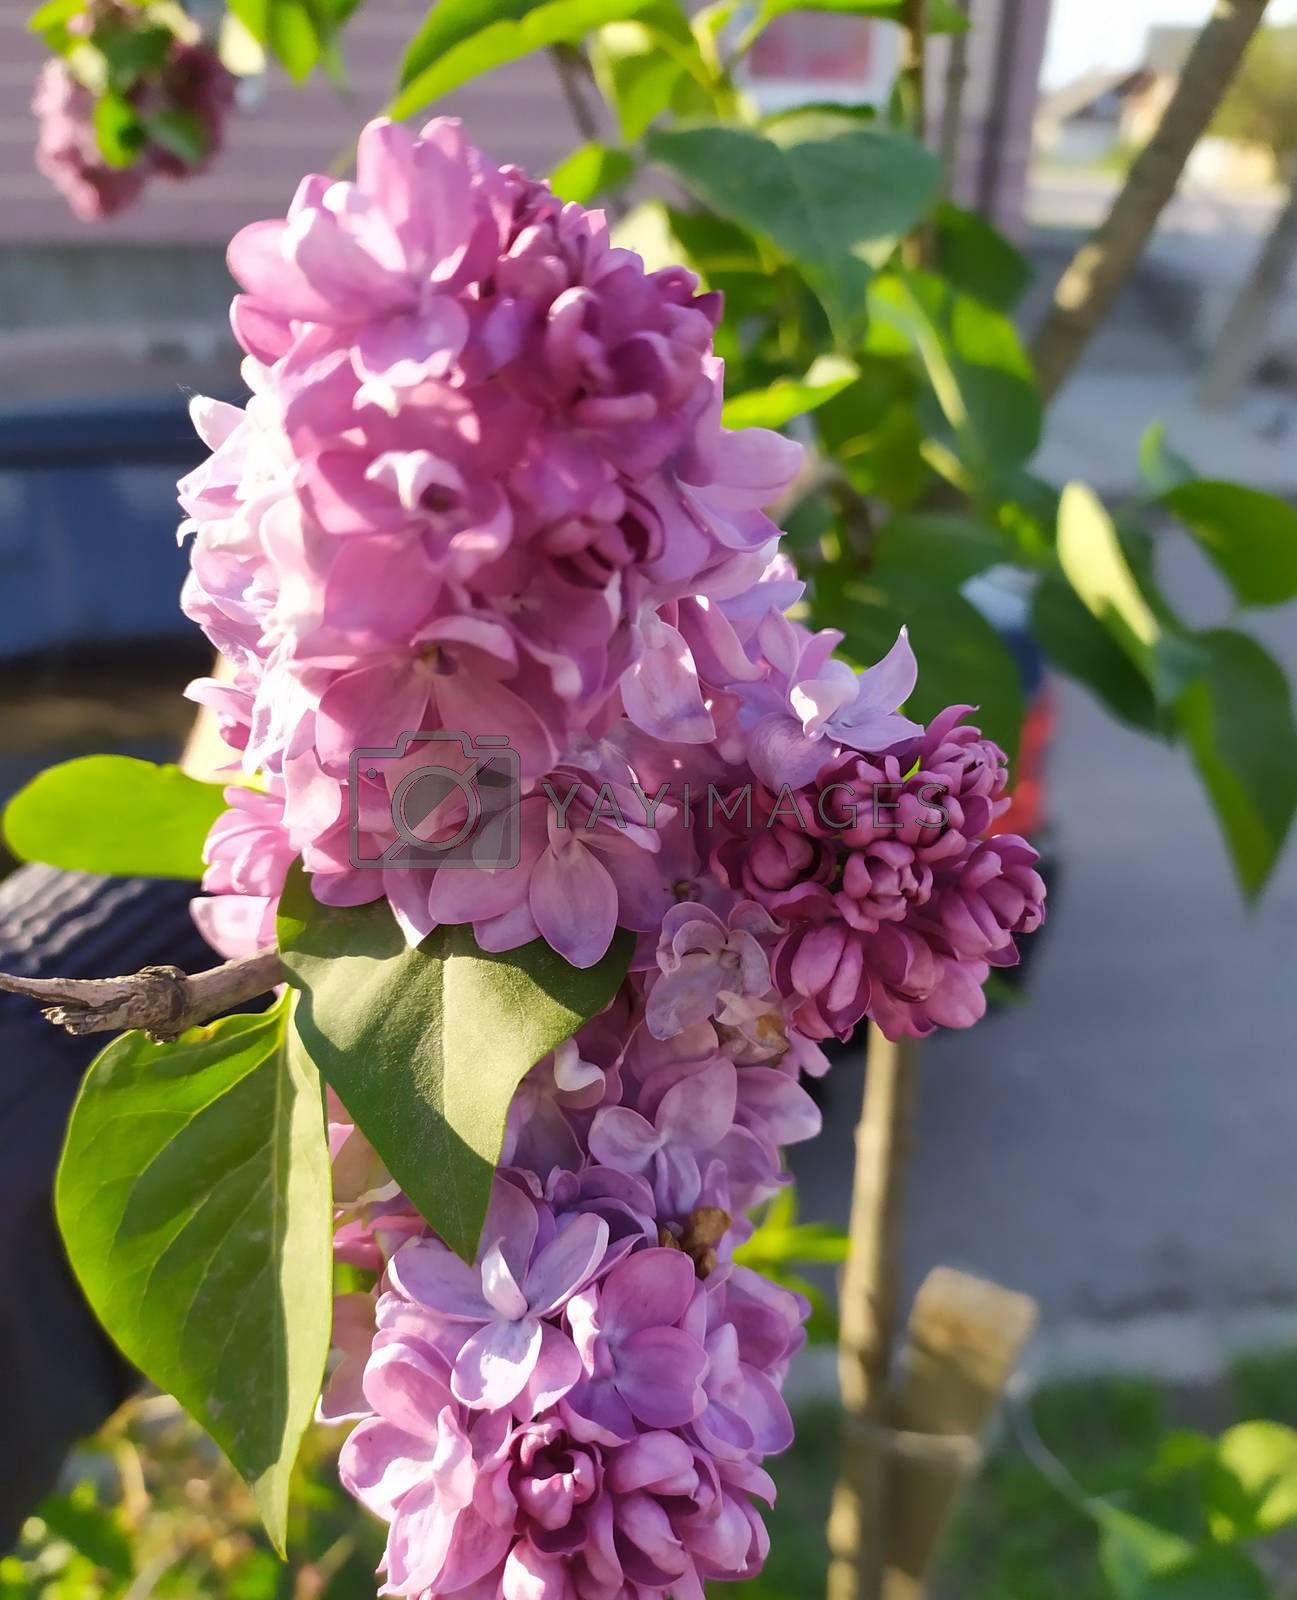 flower of lilac on a tree by sagasan